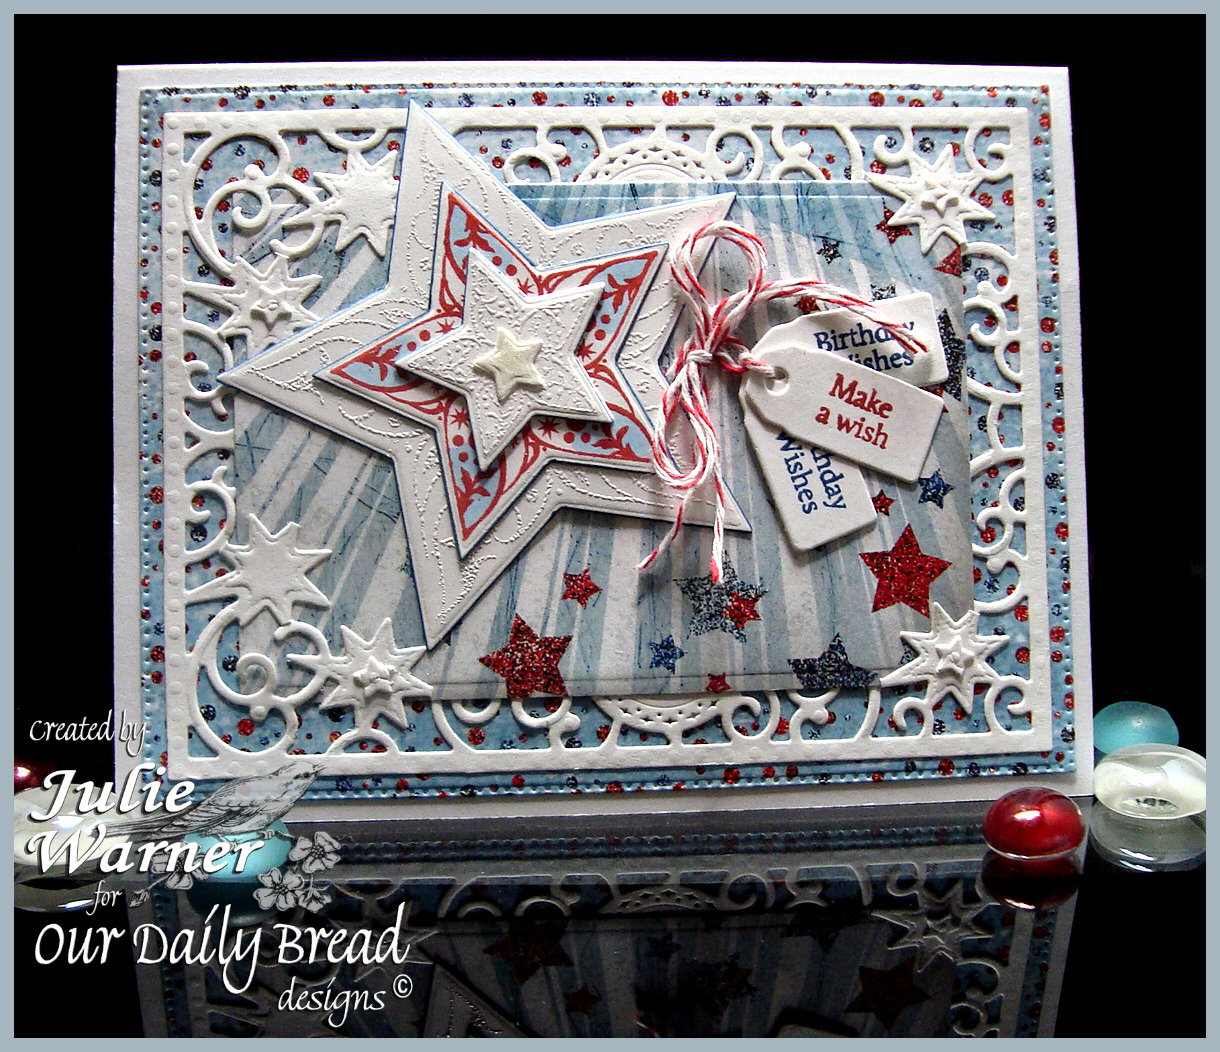 Stamps -Our Daily Bread Designs Mini Tag Sentiments, Shine On, ODBD Custom Mini Tags Dies, ODBD Patriotic Paper Collection, ODBD Custom Sparkling Stars Dies, ODBD Custom Flourished Star Pattern Die